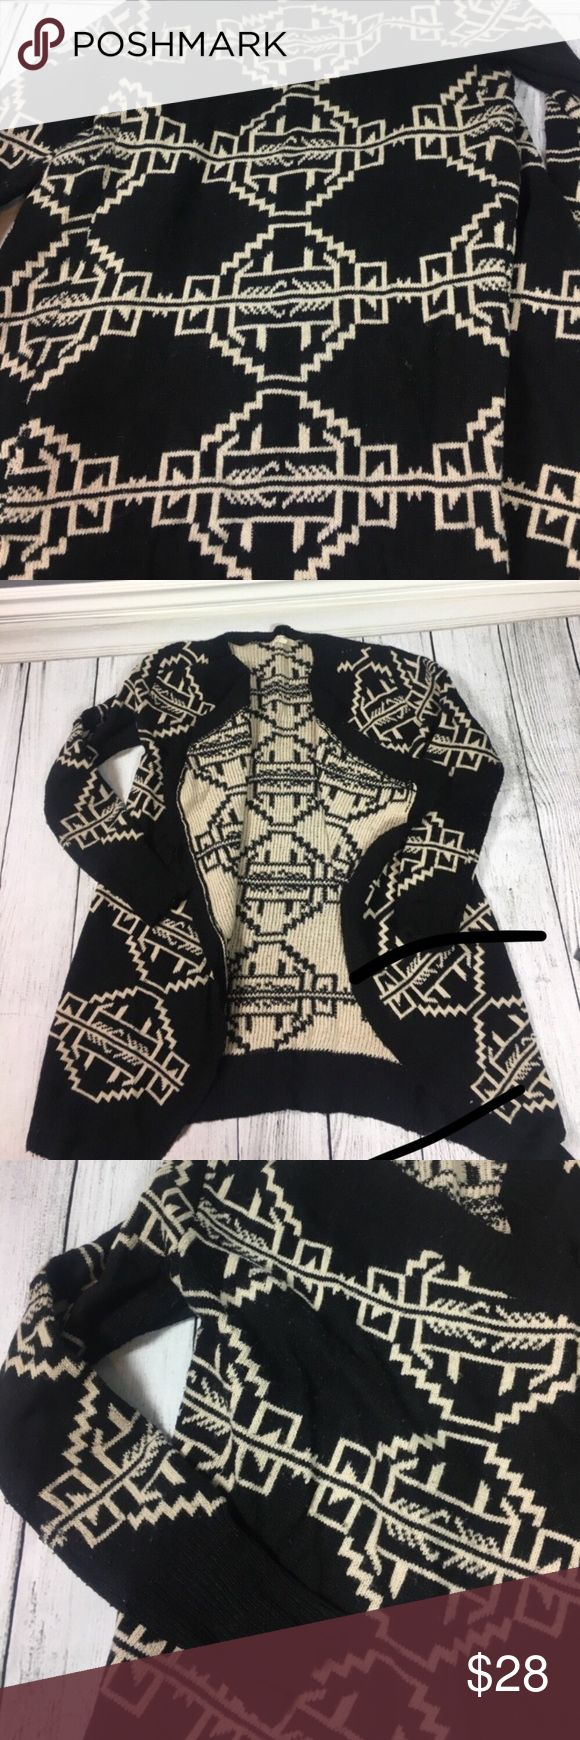 Gorgeous tribal print cardigan ❤️ Gorgeous tribal print cardigan. Super cute and cozy. This cardigan keeps you very warm since it is not very thin but more on the thick side. There is a small amount of pilling but not very much. Made out of  85% acrylic and 15% wool materials. COZY Sweaters Cardigans